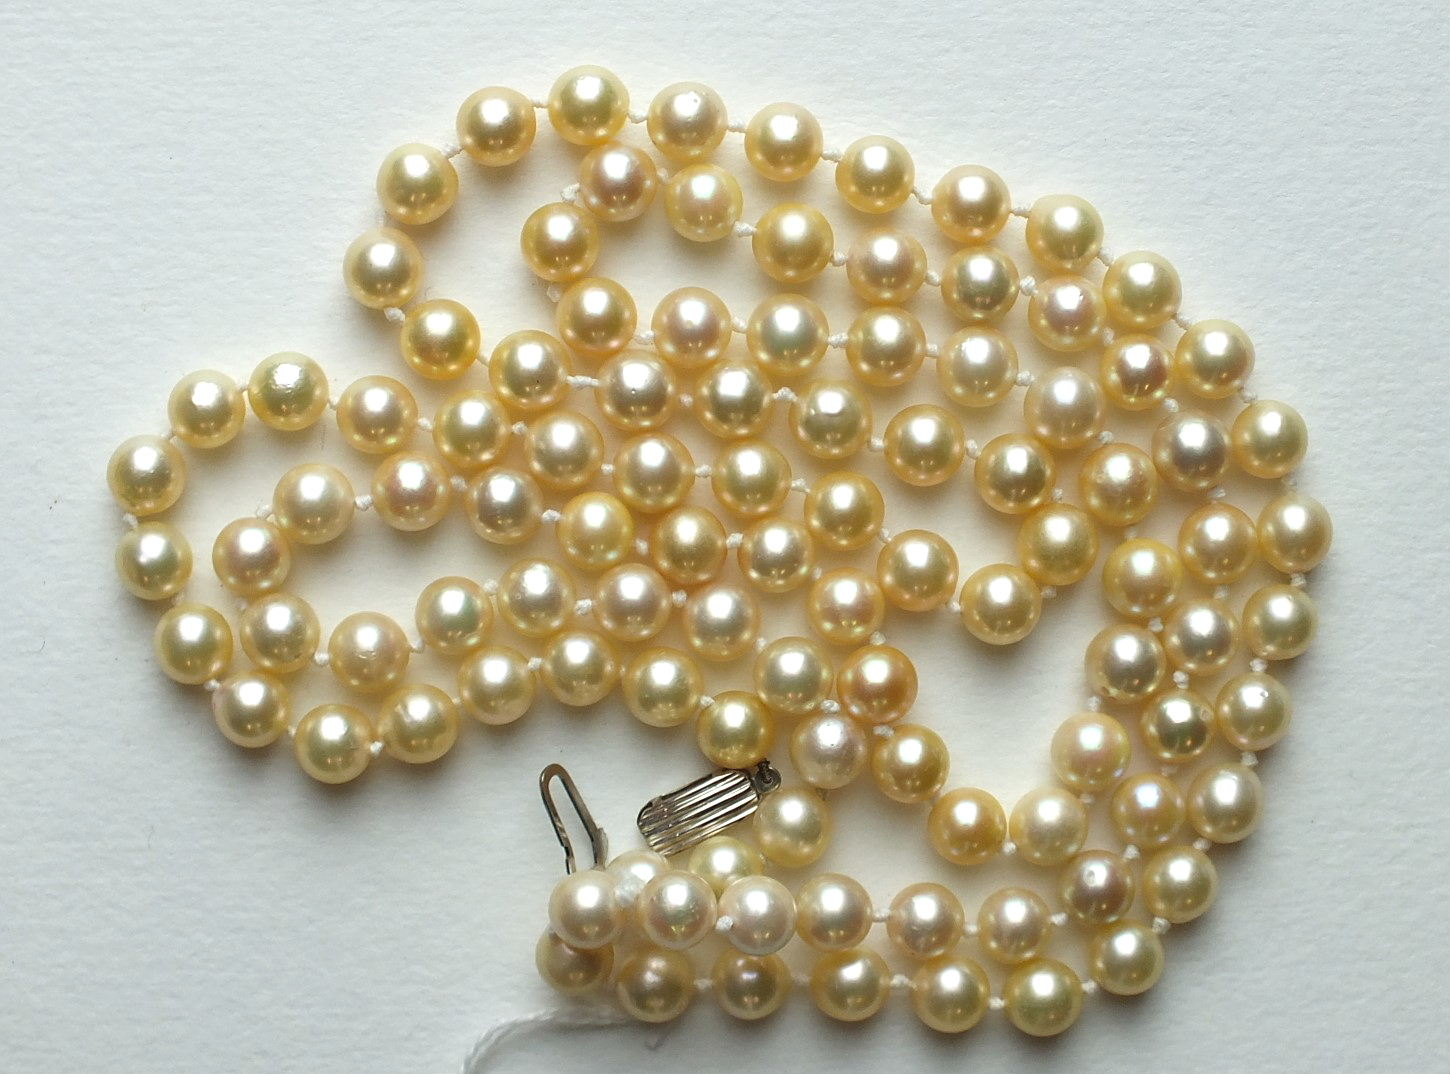 A long string of uniformly-sized cultured pearls, 7.5mm diameter, 100cm long, with 9ct white gold